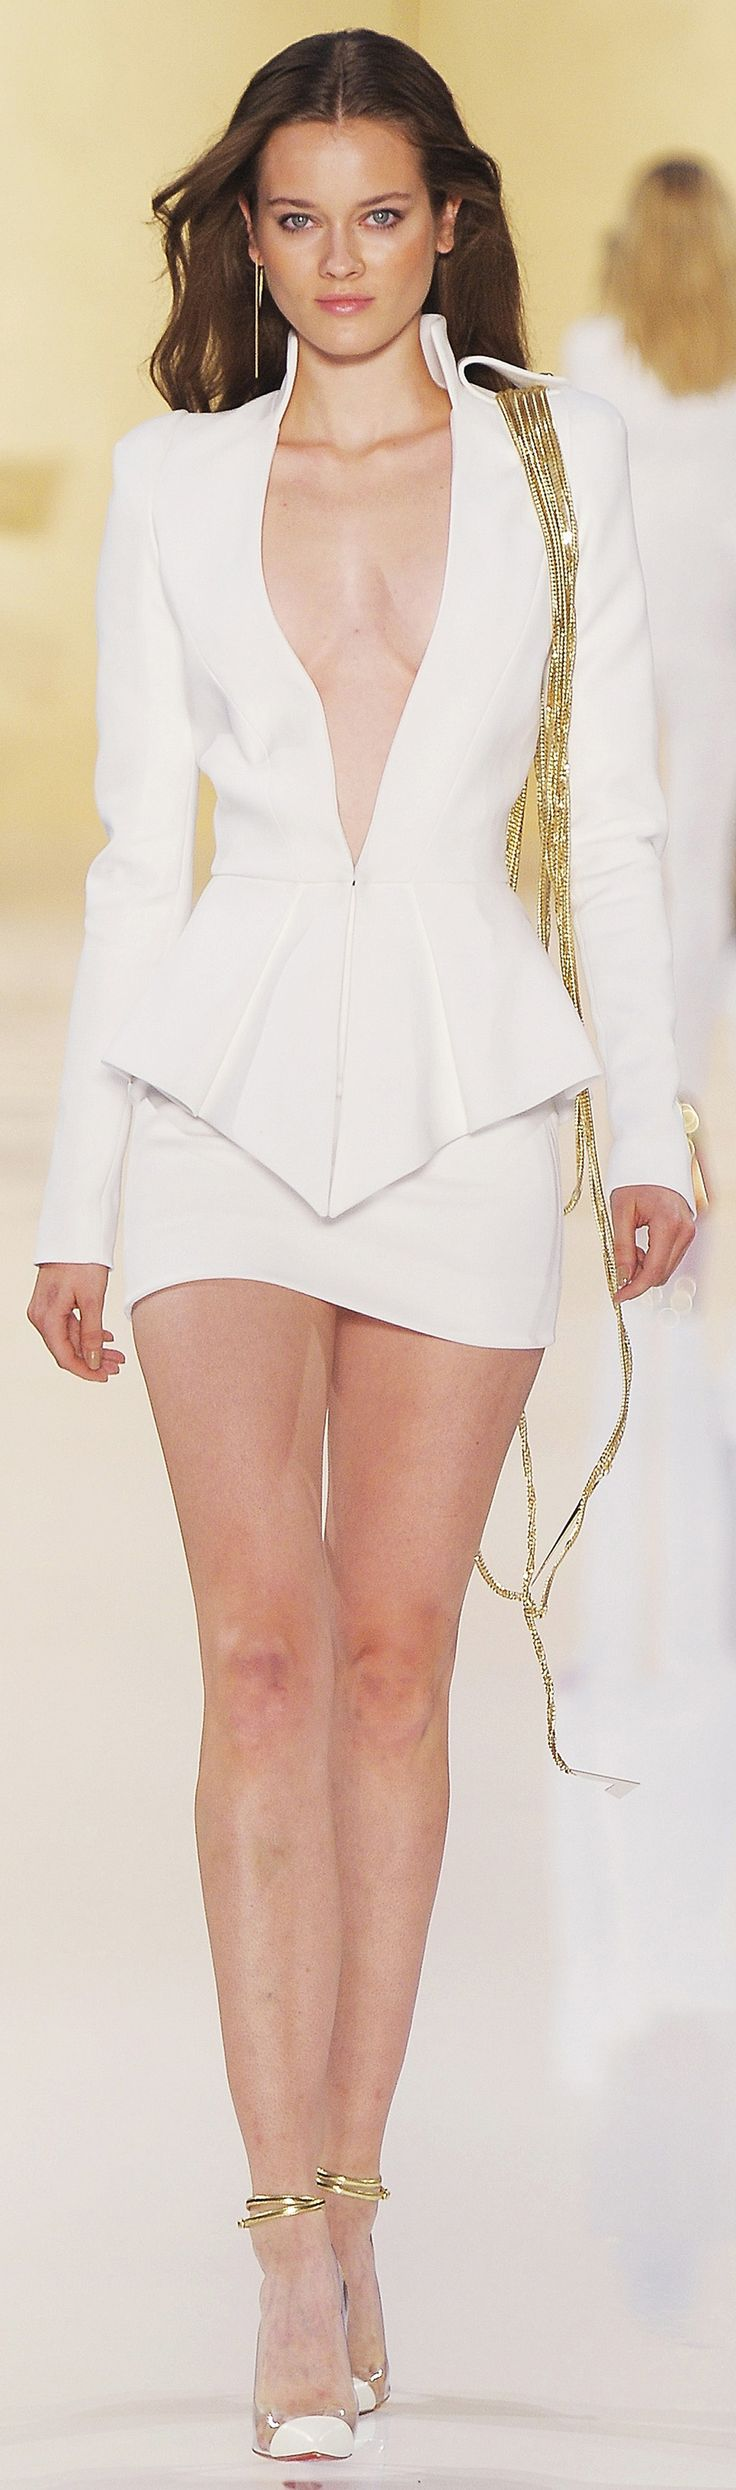 ✜ Alexandre Vautier Haute Couture FW 2013 ✜ http://www.vogue.it/en/shows/show/haute-couture-fall-winter-2012/alexandre-vauthier/collection/493993